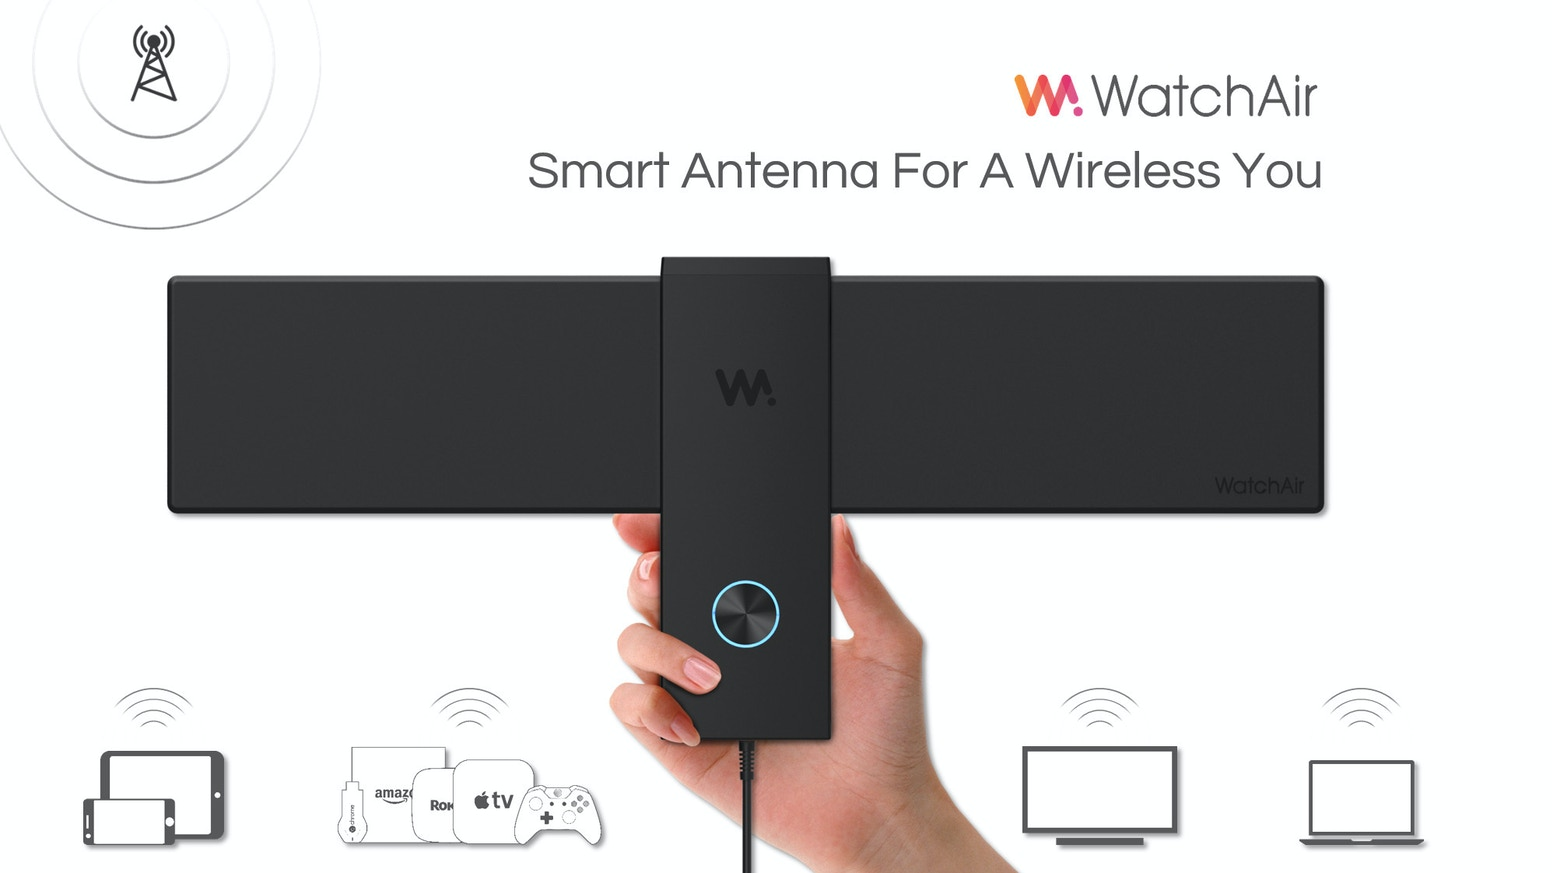 WatchAir, smart antenna, lets you watch/record local live TV on phones, tablets, and streaming boxes/sticks. No wire. No monthly fee.